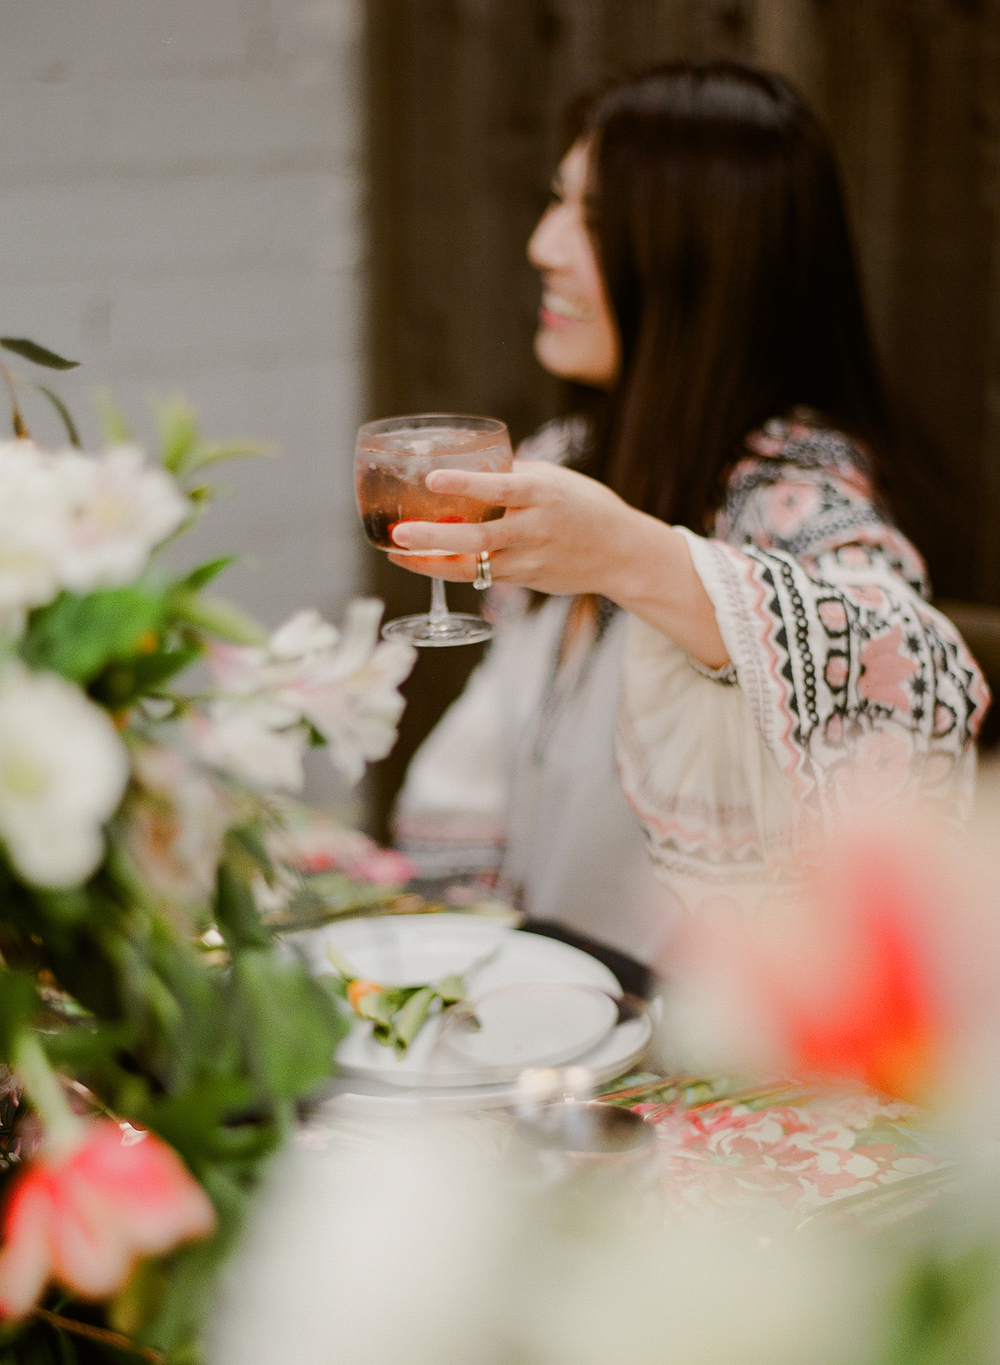 Party planning made easy with effortless outdoor entertaining tips form boxwoodavenue.com | kevin chin photography